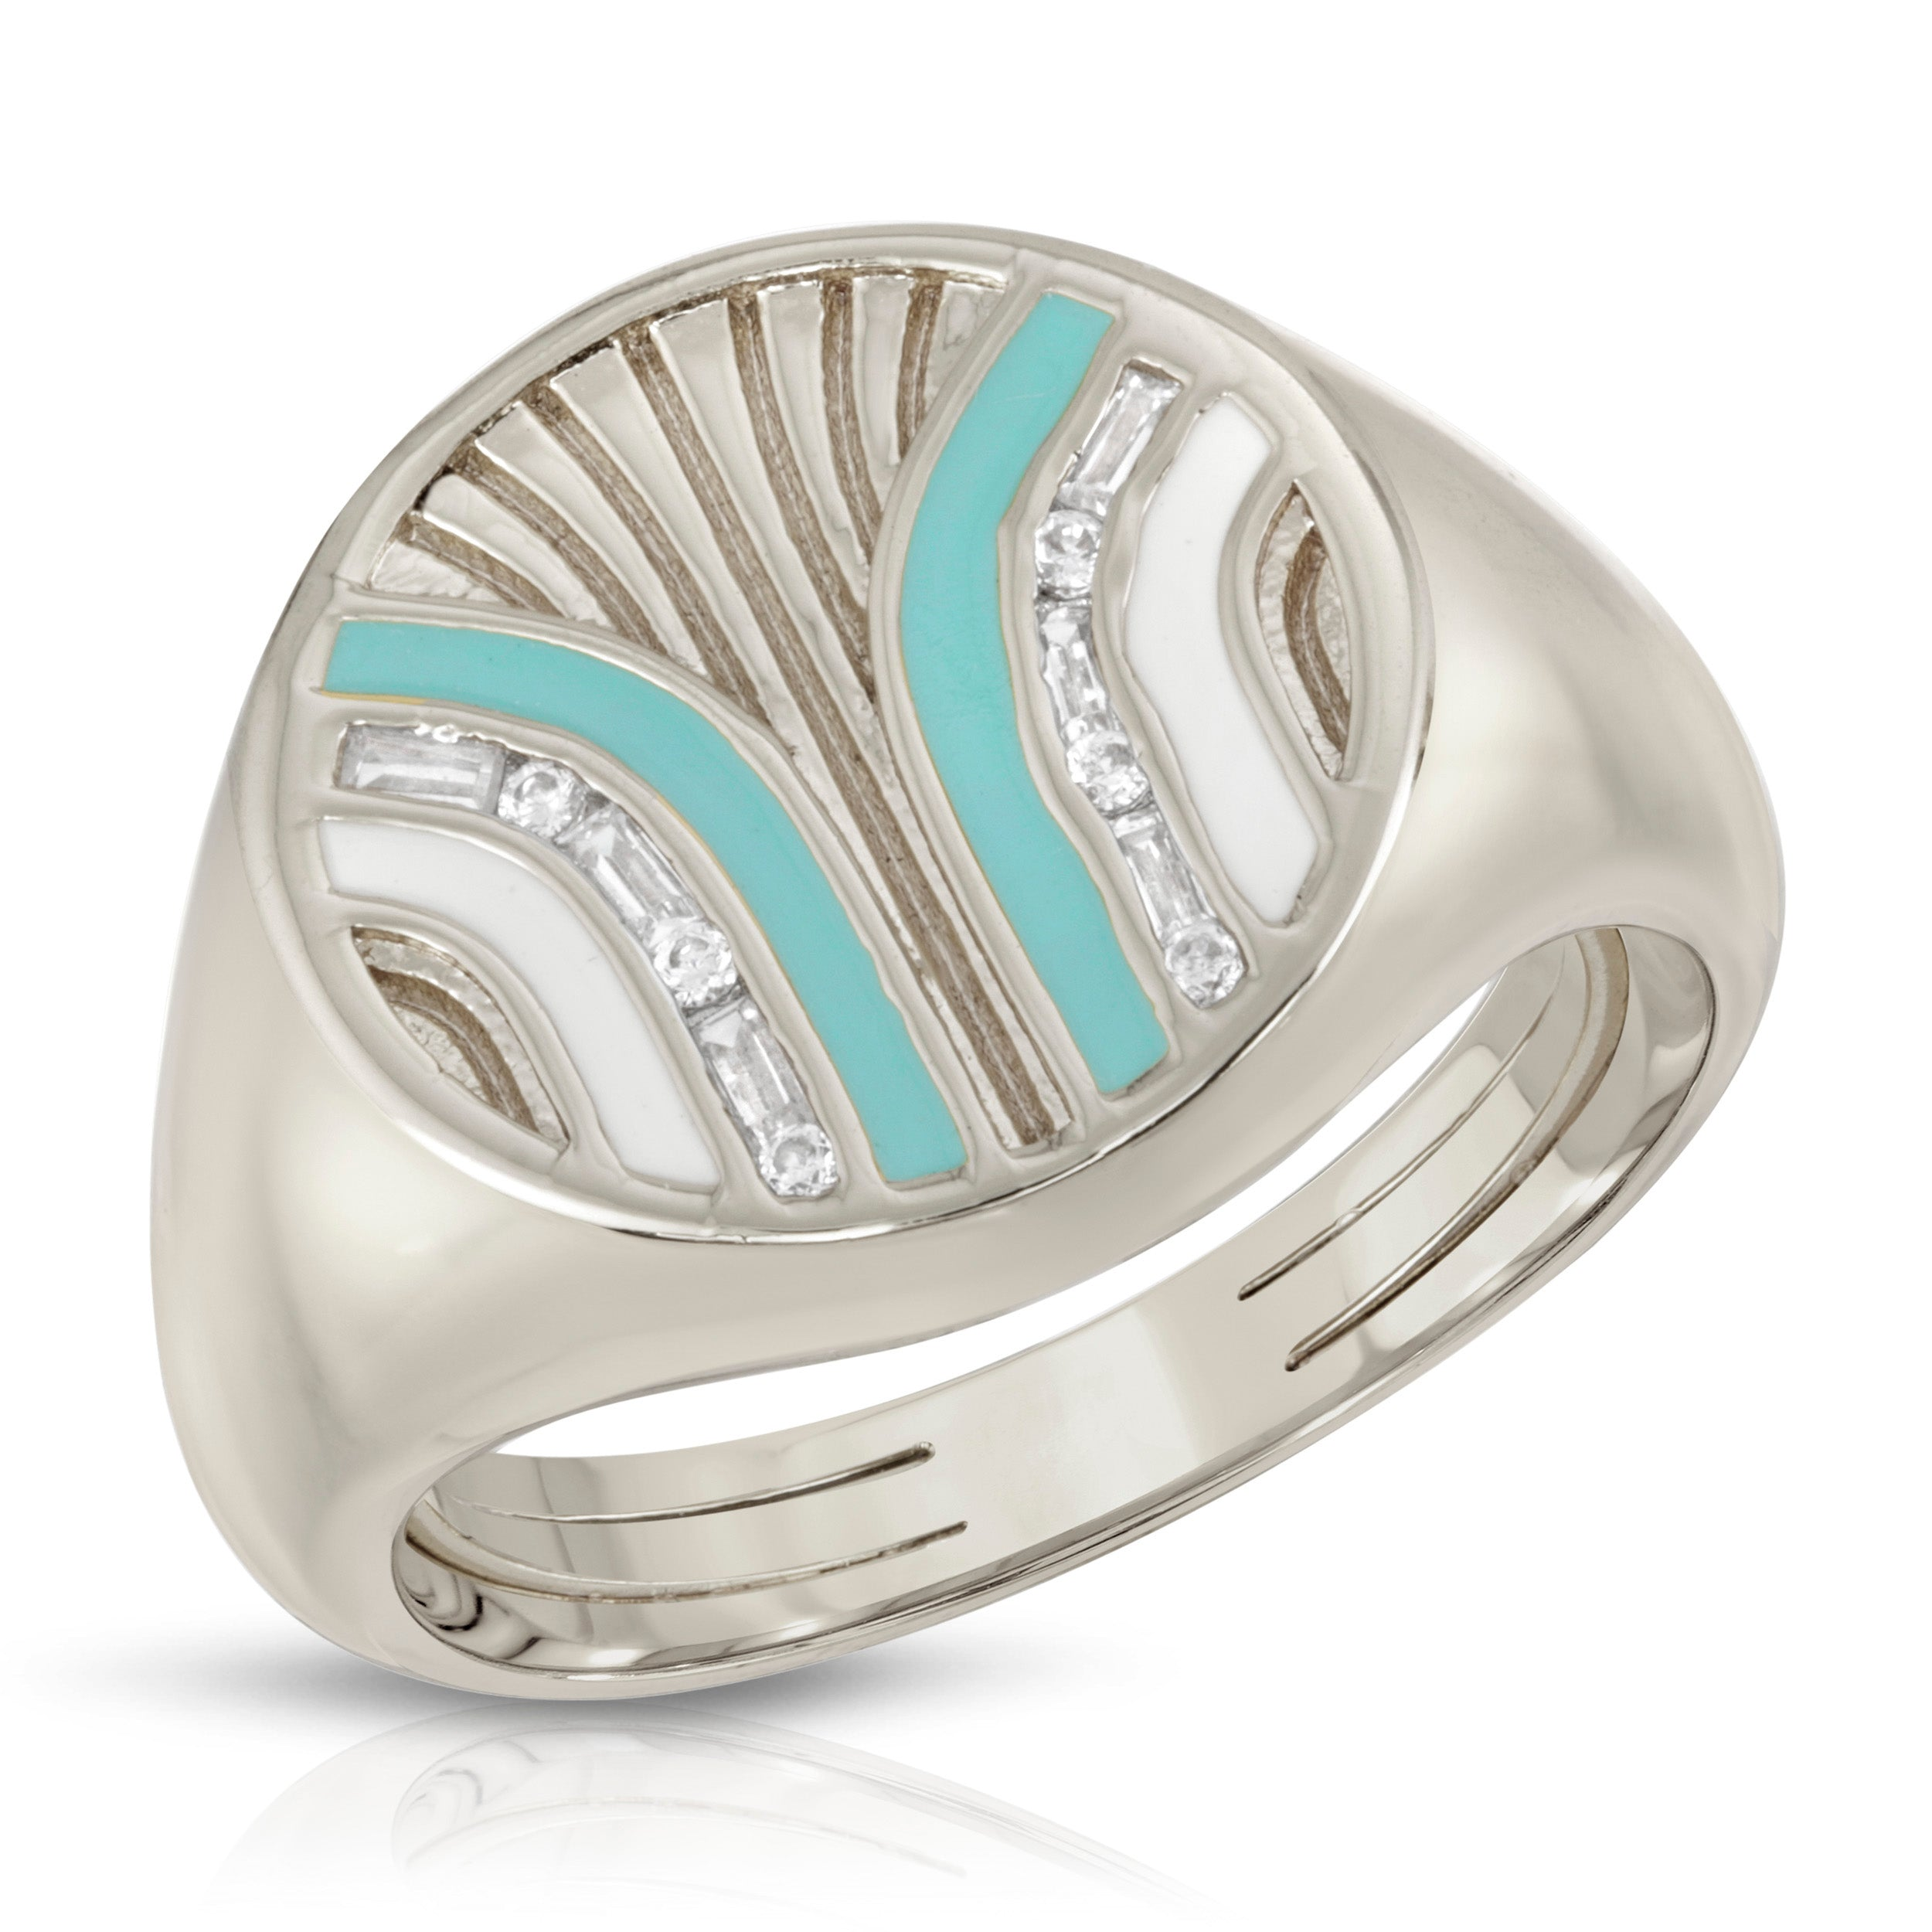 South Beach Signet Ring- Turquoise/White